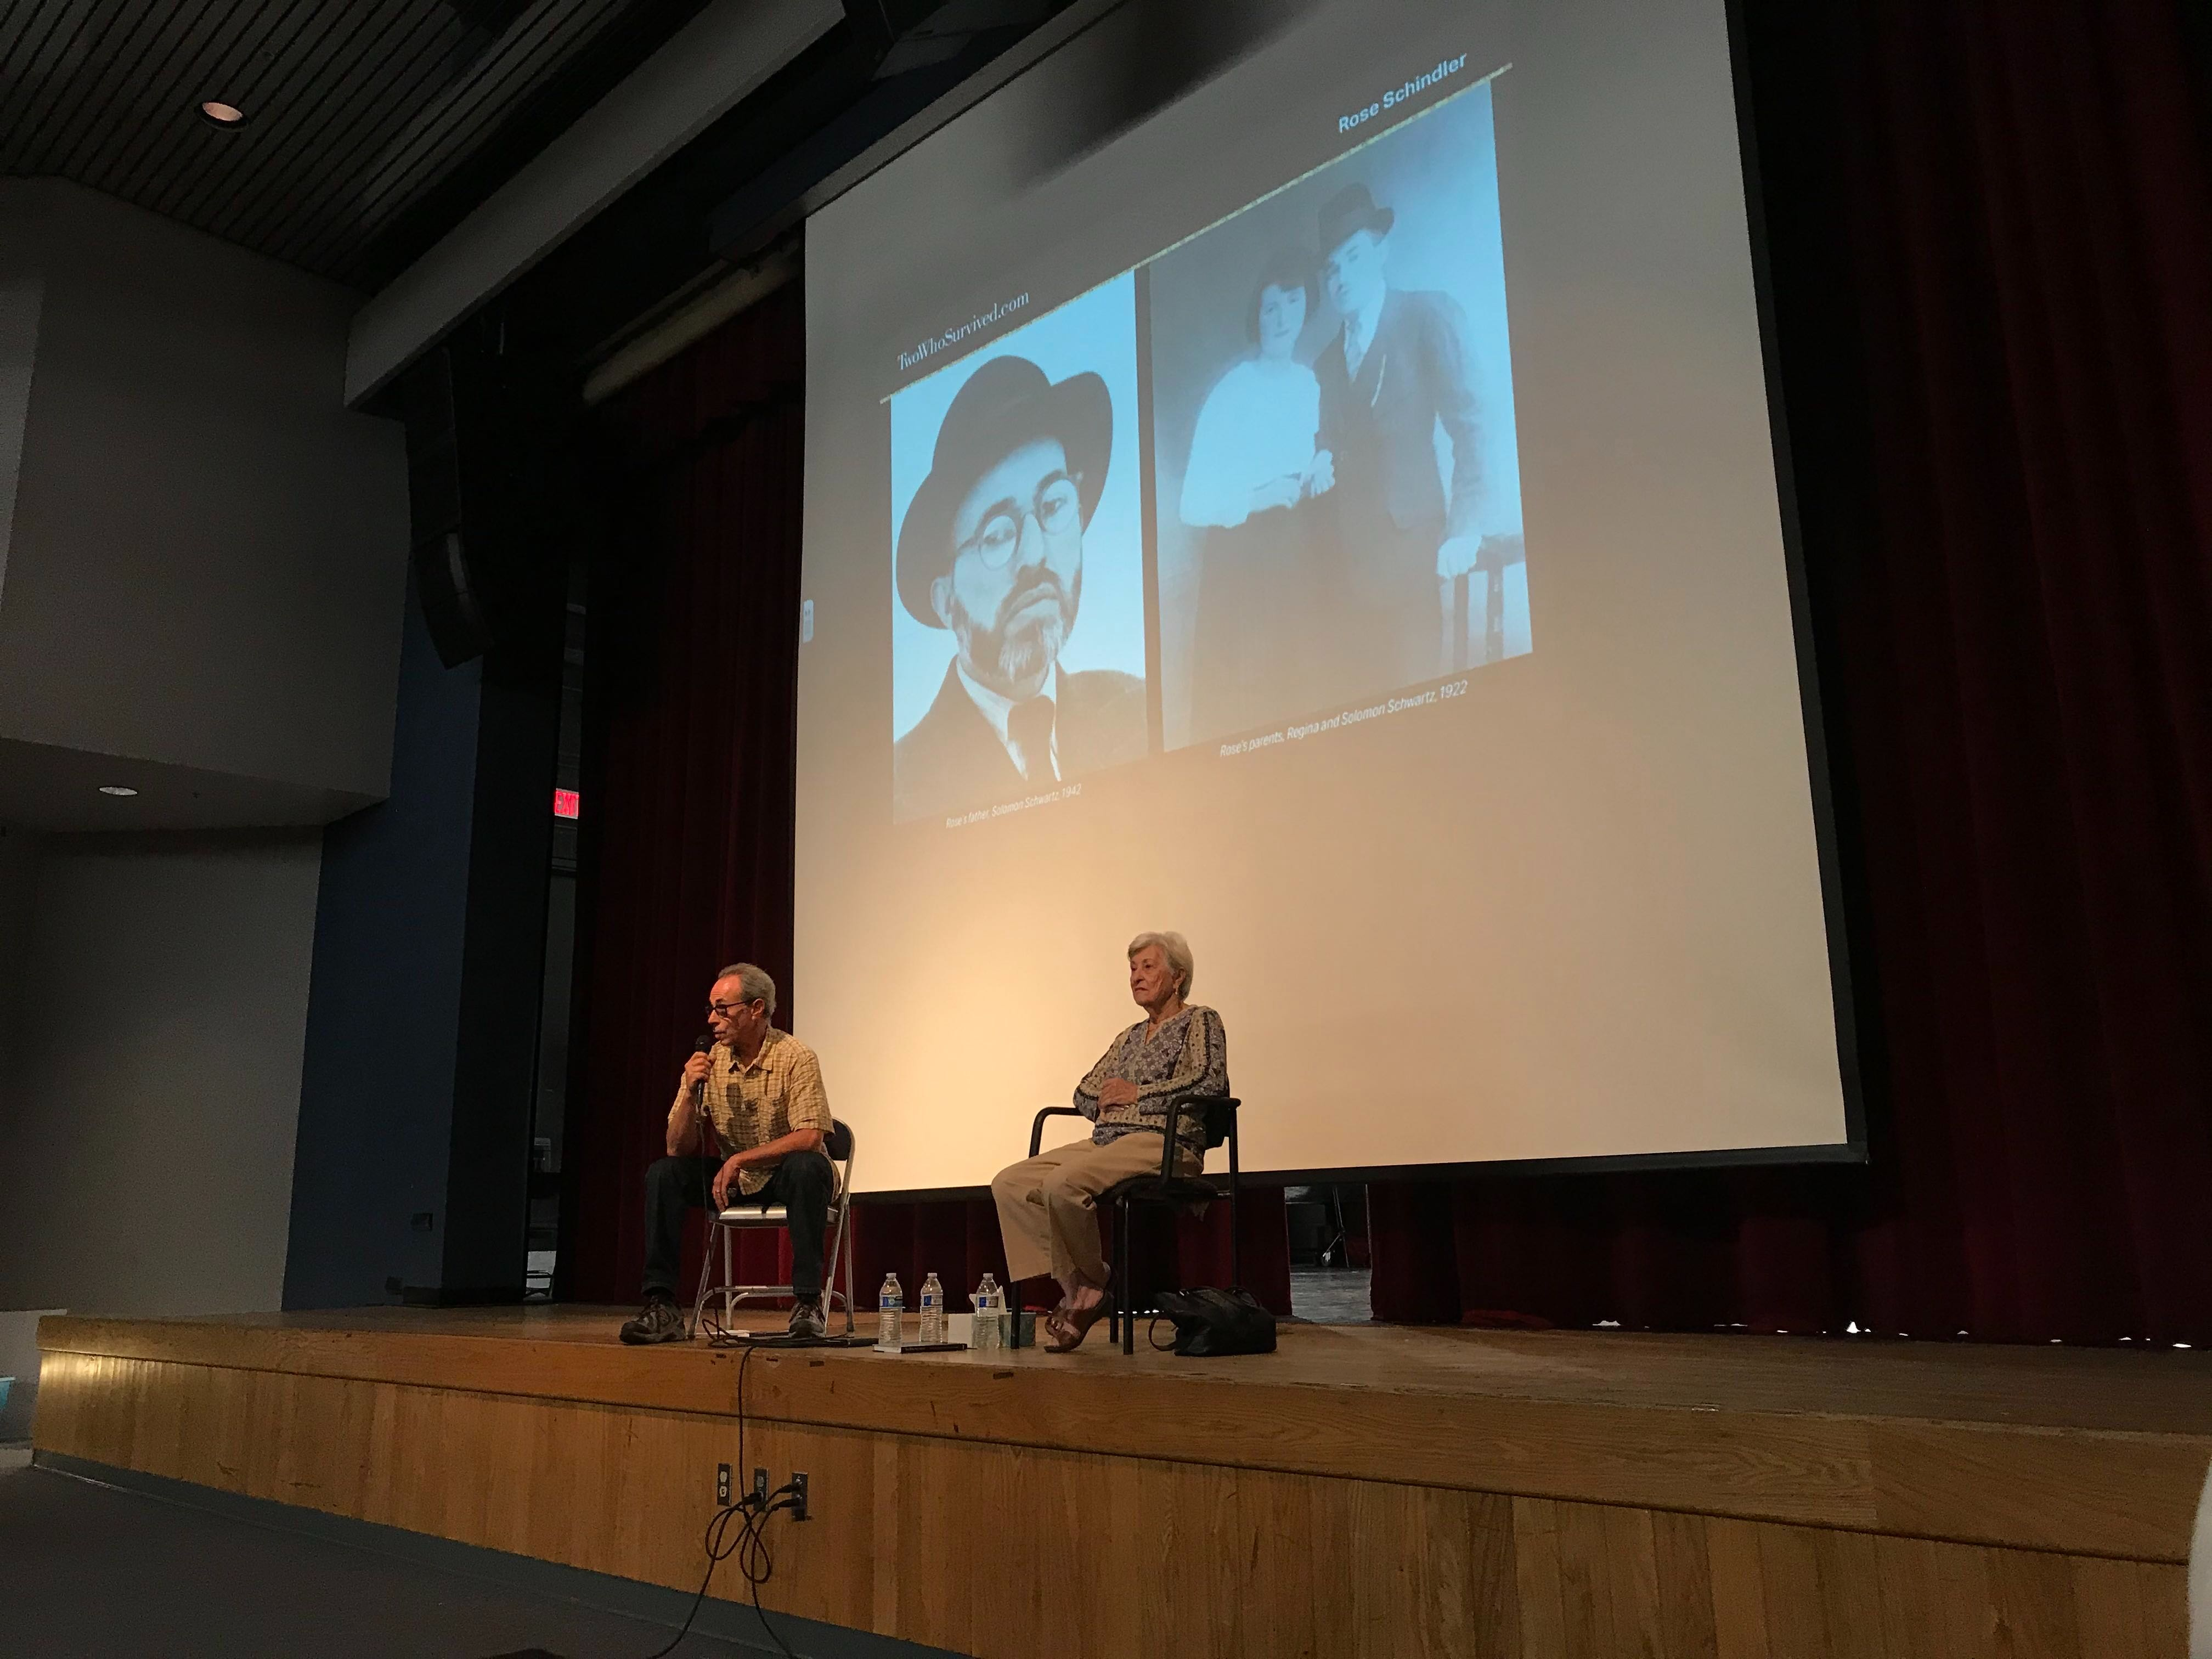 San Diego Author Brings New Holocaust Memoir To Students